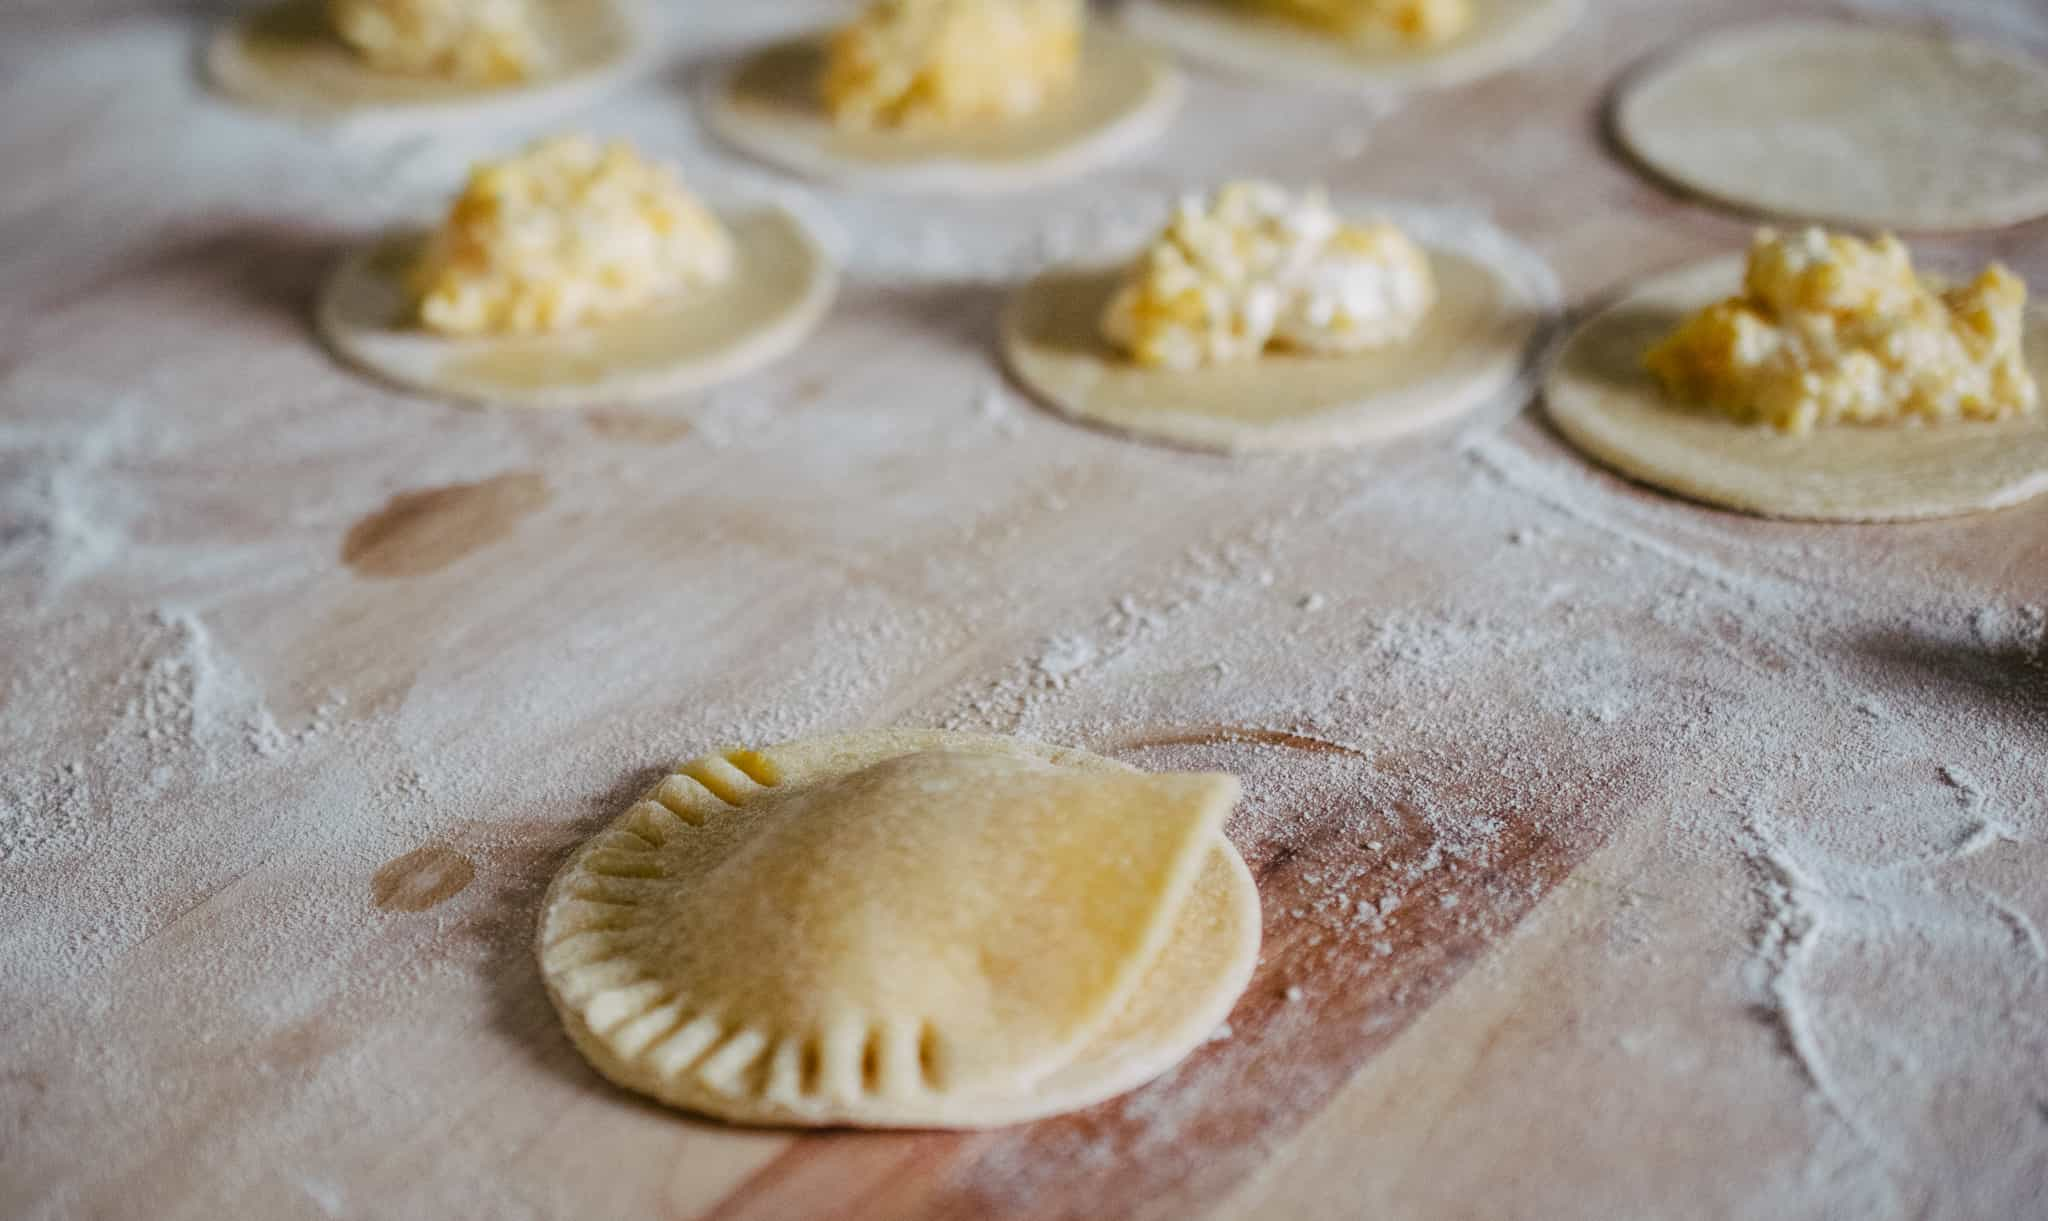 jumbo butternut squash and ricotta ravioli dough being stuffed and sealed on a floured, butcher block counter top